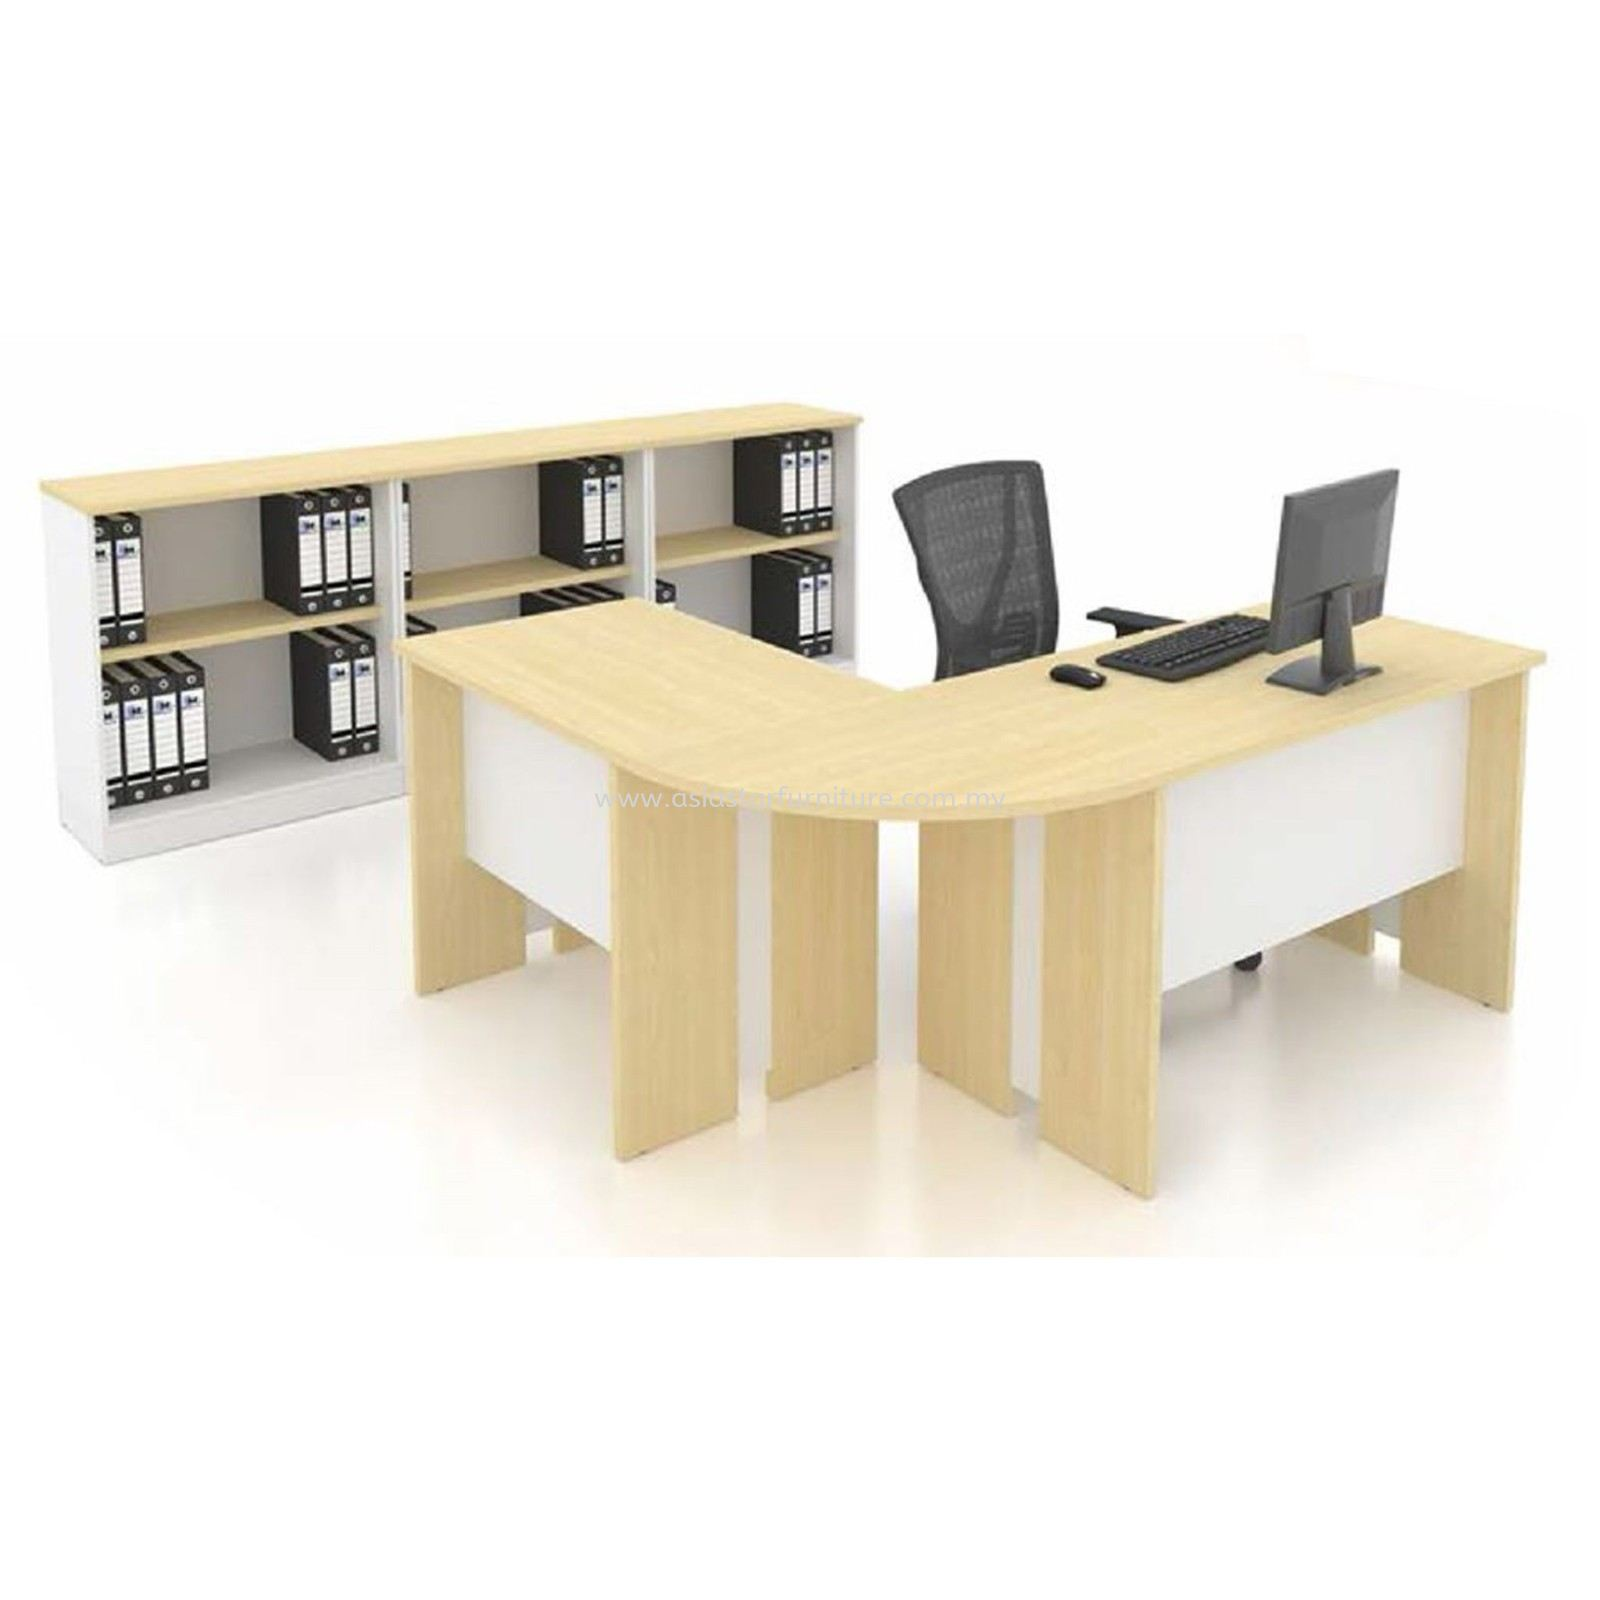 FAMAH 4' OFFICE TABLE | STUDY TABLE | COMPUTER TABLE - office table Seri Kembangan | office table Sri Petaling | office table Bukit Jalil | office table Sungai Besi